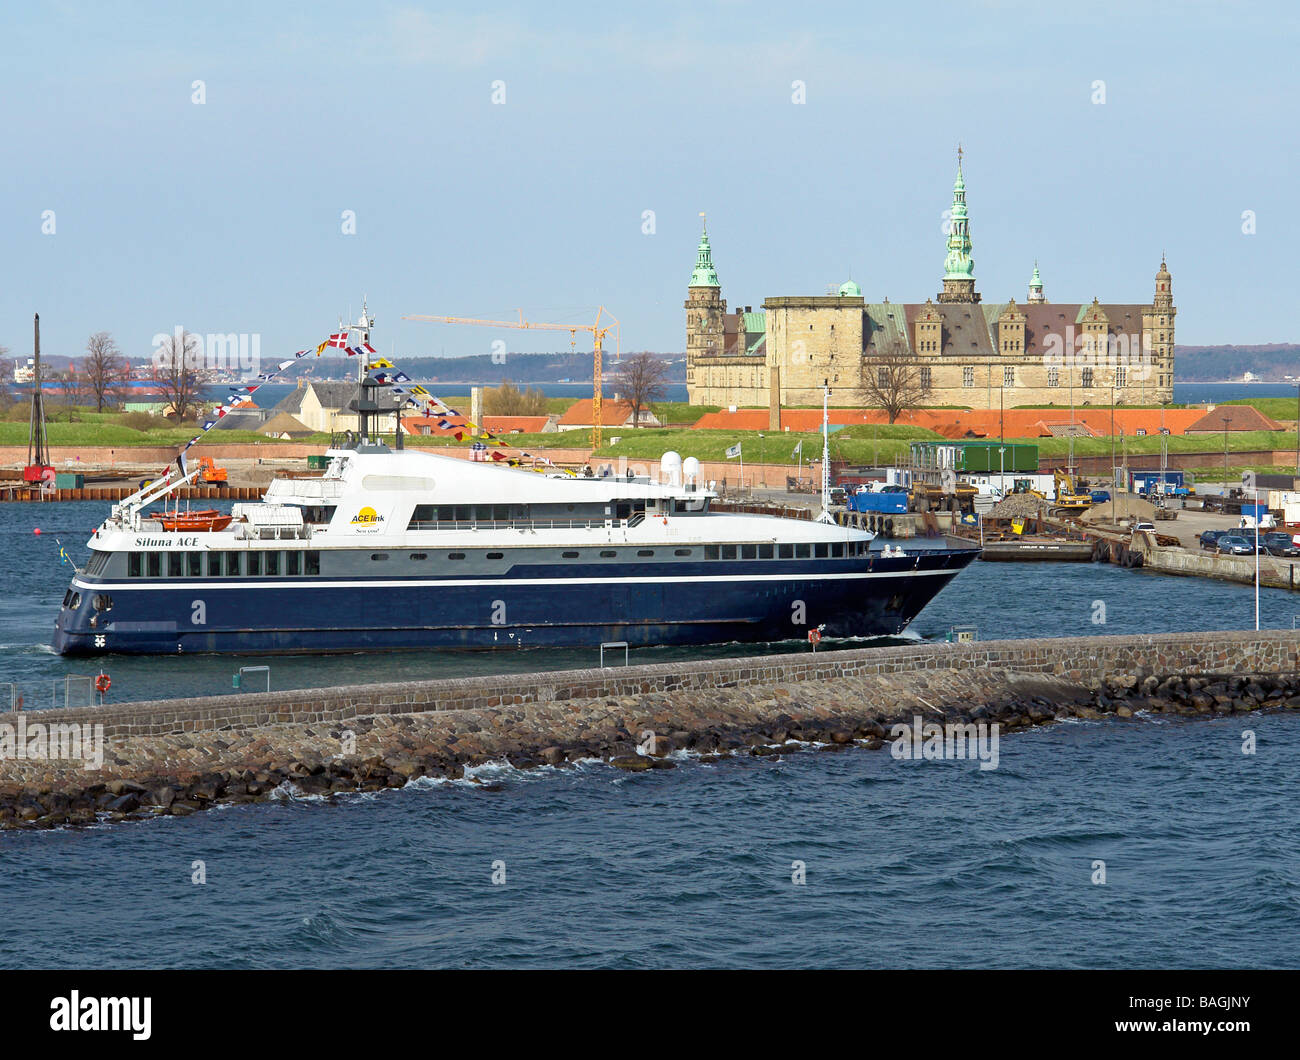 Fast passenger vessel Siluna ACE leaving Helsingor harbour in Denmark en route to Helsingborg in Sweden - Stock Image